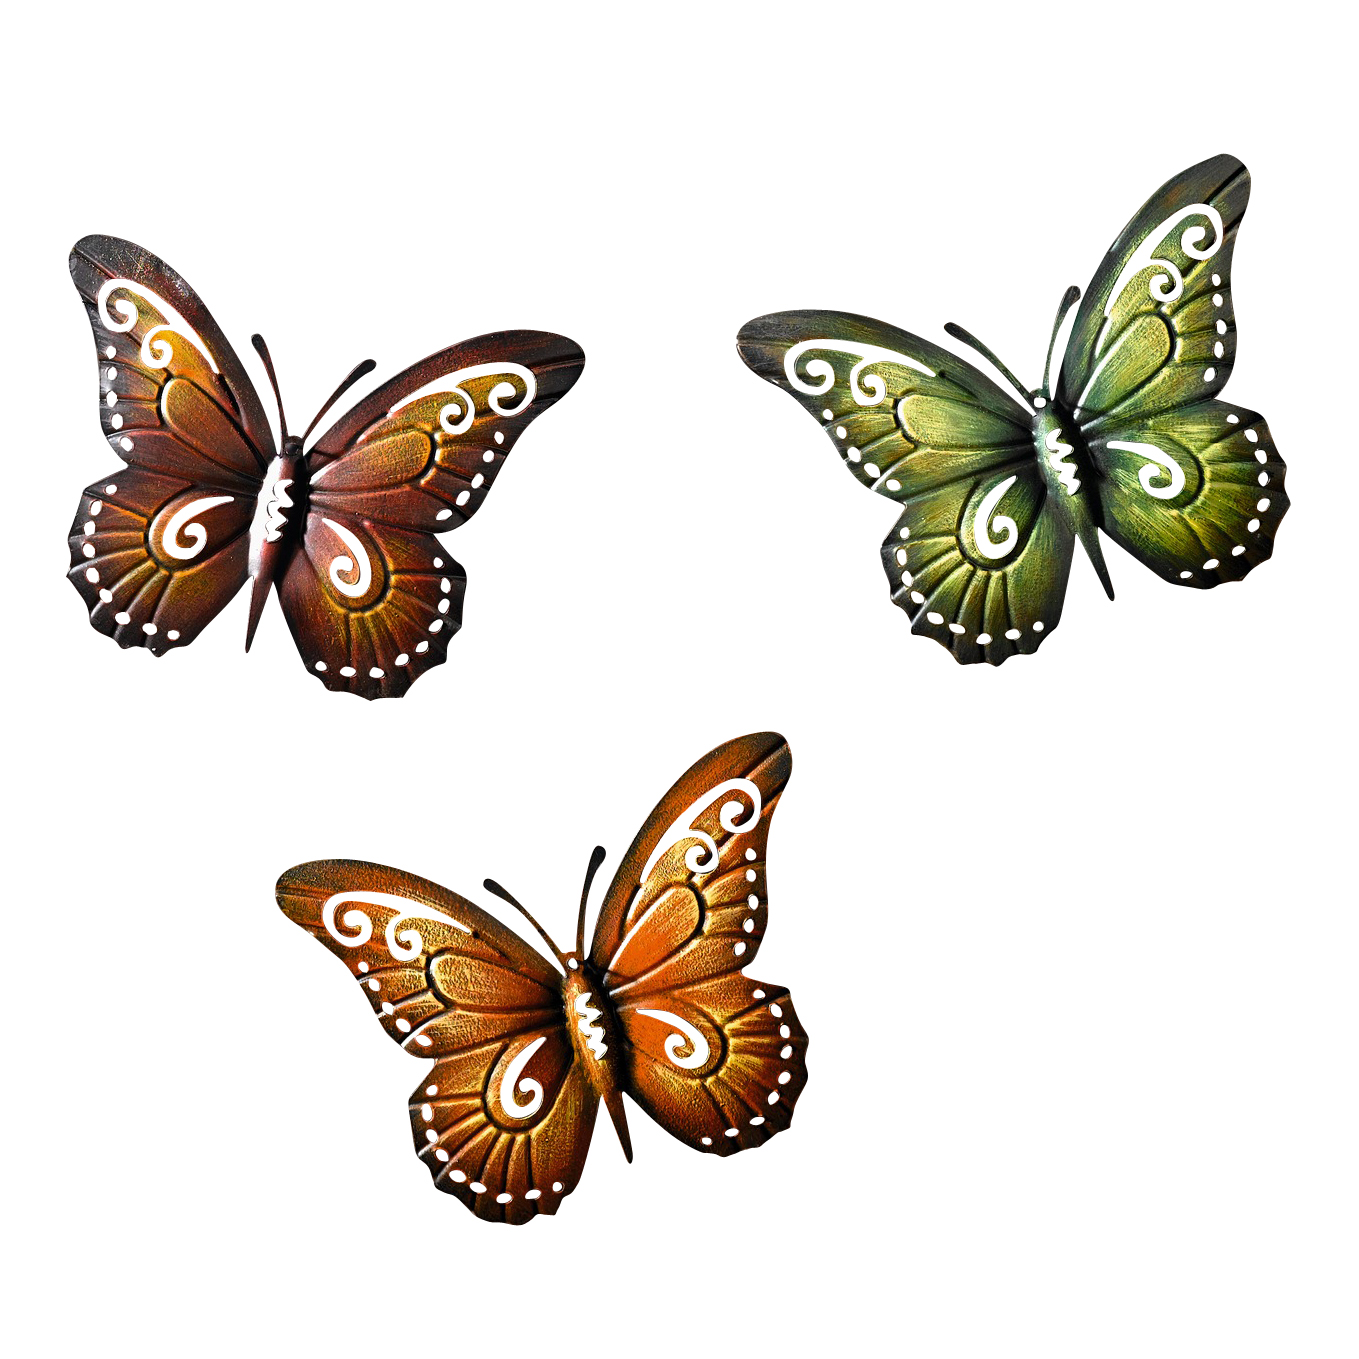 Metal Butterfly Wall Decor Colored Metal Butterflies, Set of Three Wall Artwork by Kozy Life